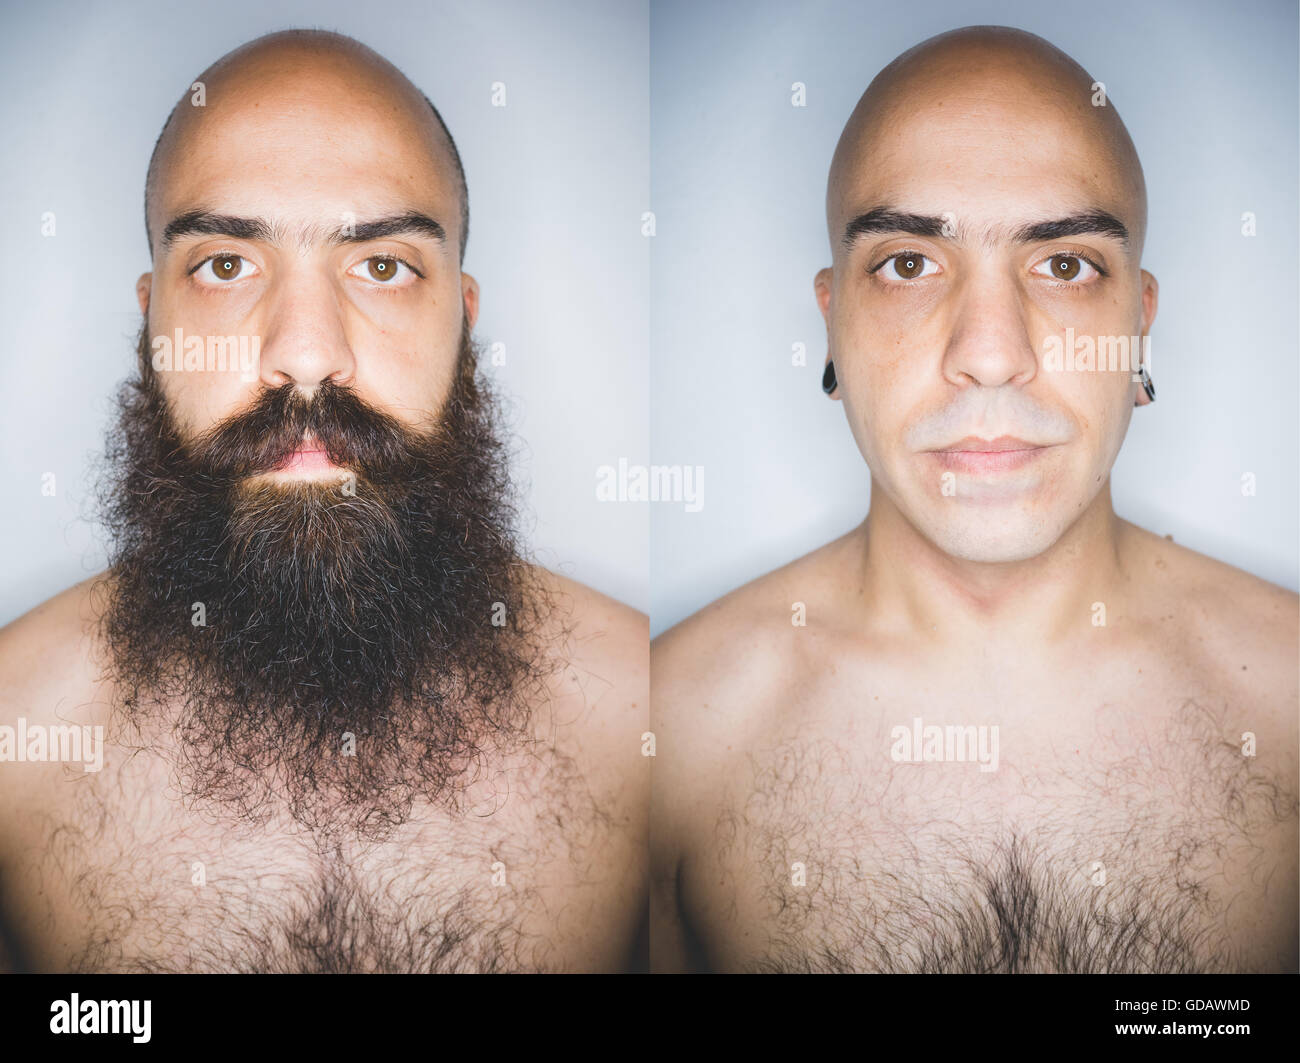 Before and after shaved